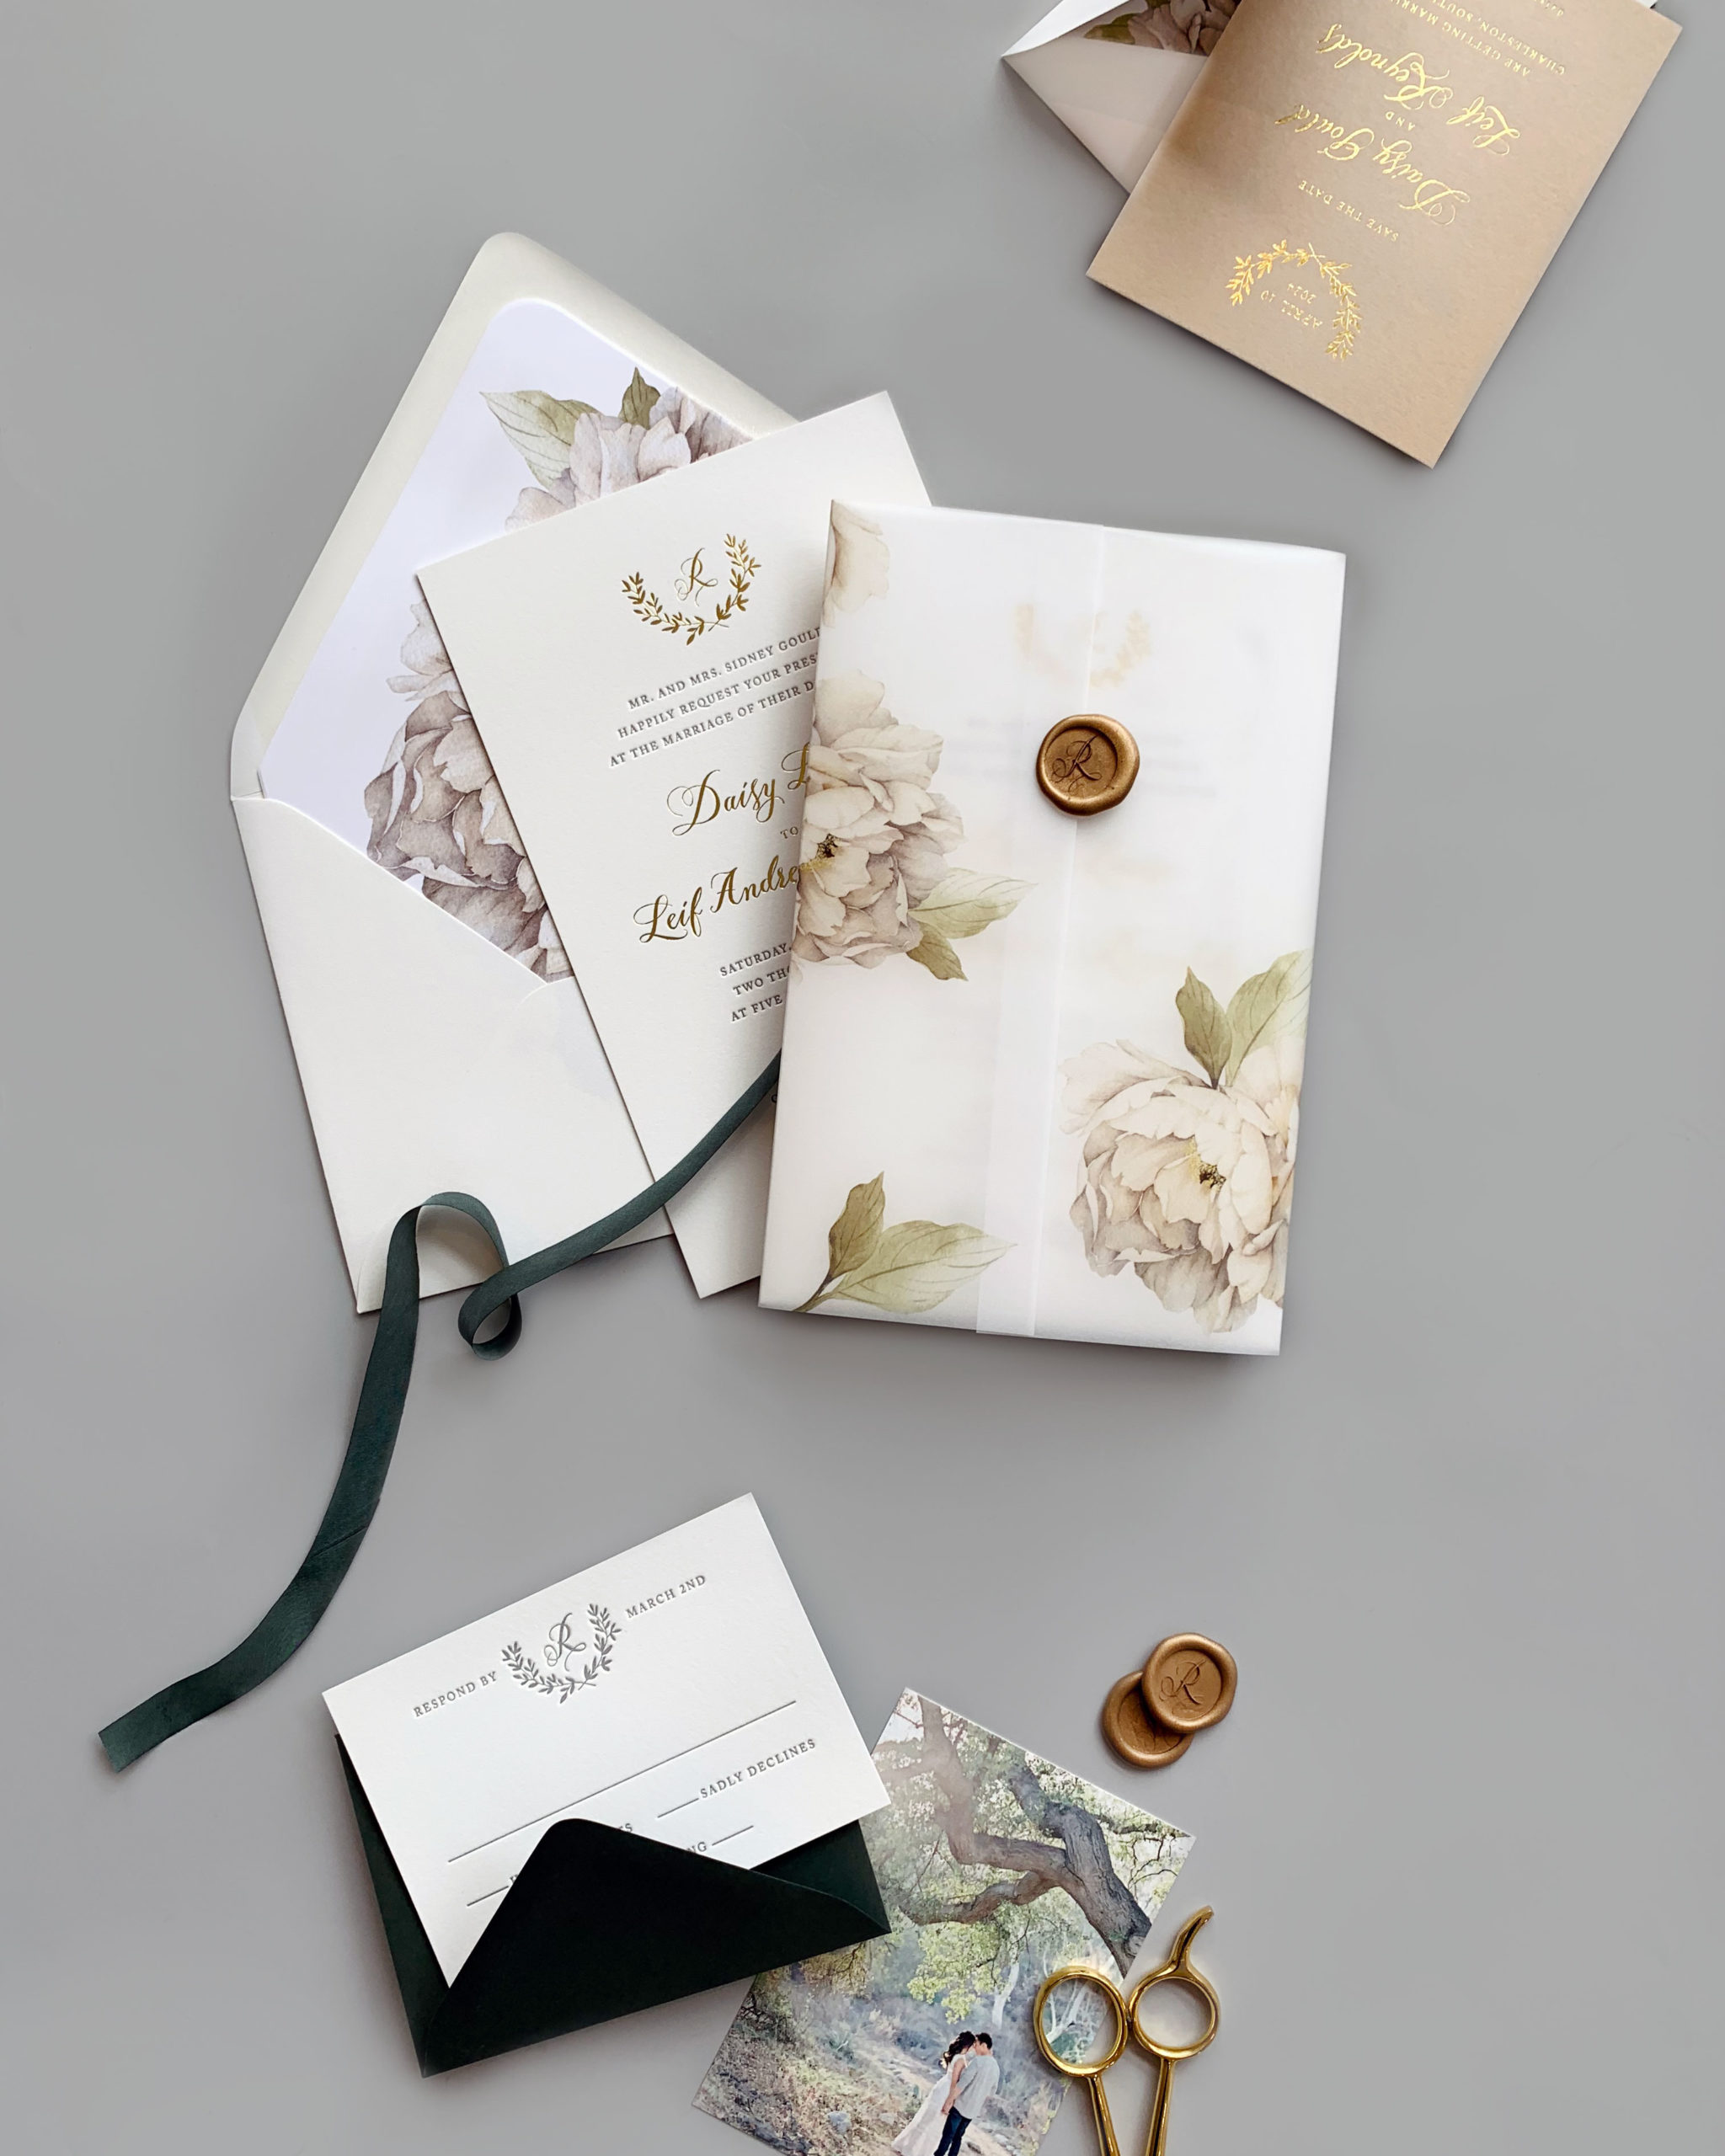 A floral printed vellum gate fold surrounds a formal letterpress and foil stamped wedding invitation.  Neatly closed with a custom wax seal, these wedding invitations from Staccato are perfectly on-trend.